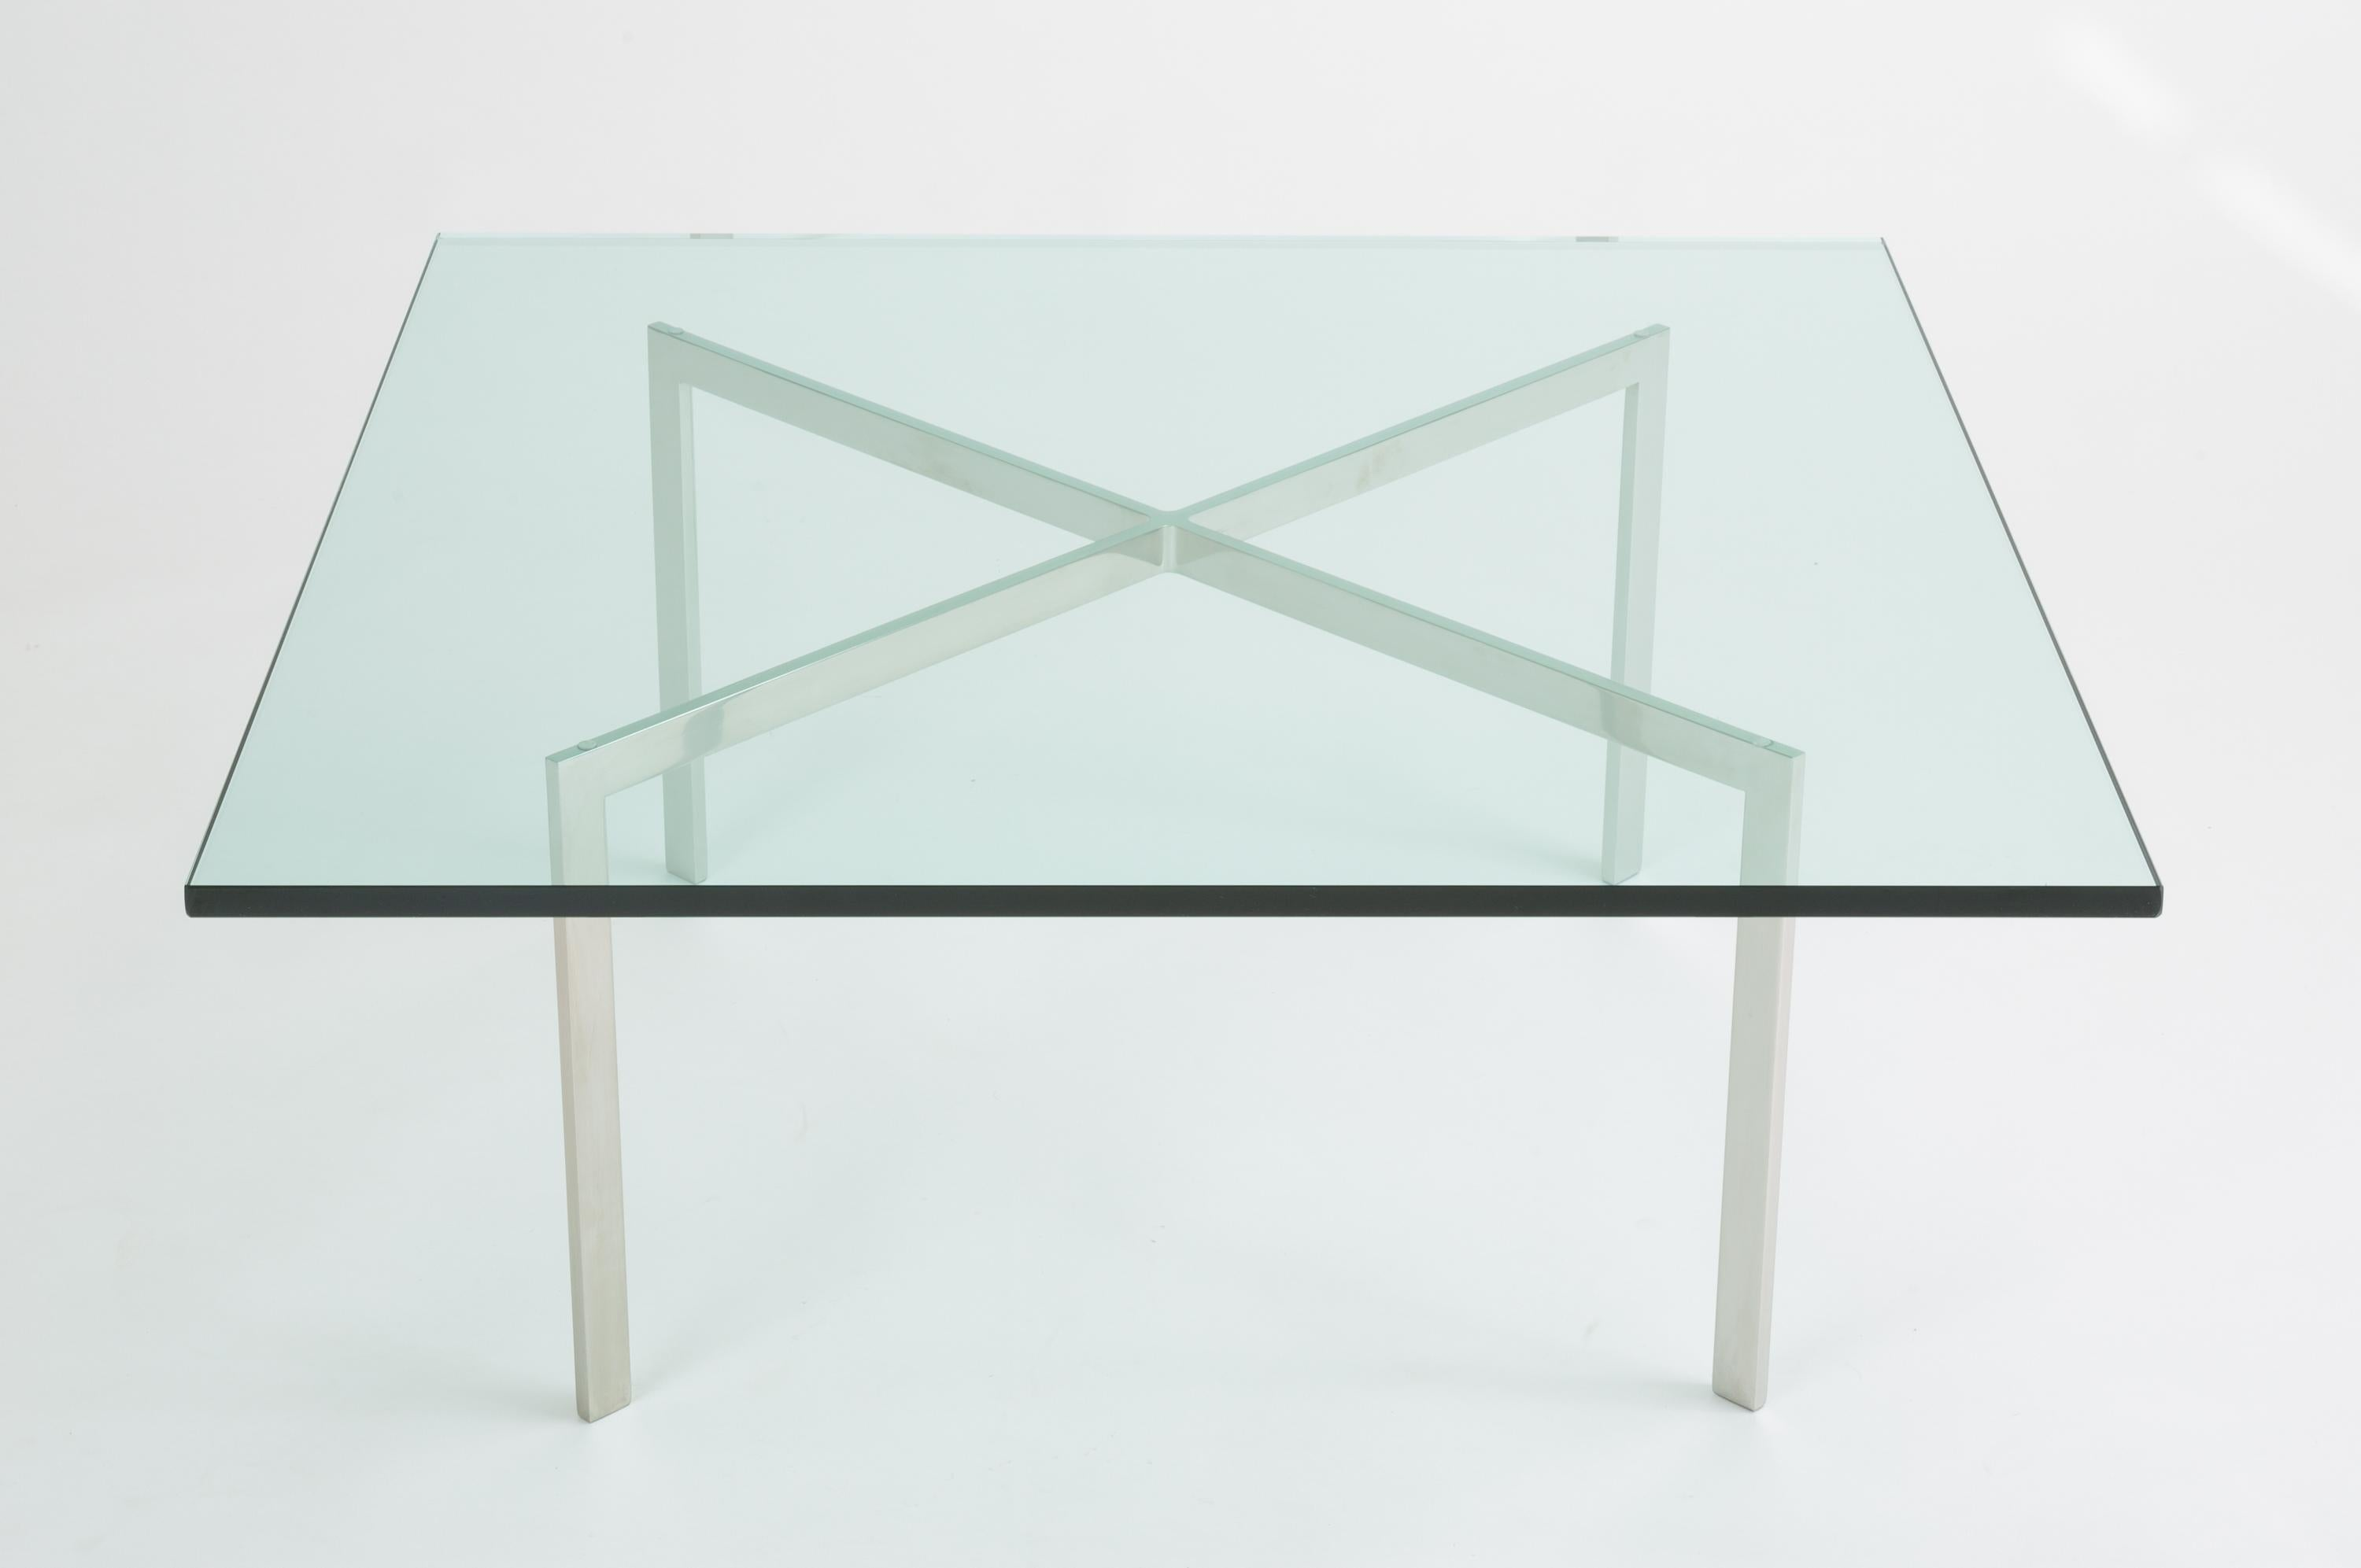 Elegant The Iconic Barcelona Coffee Table From Ludwig Mies Van Der Roheu0027s 1929  Collection. Brought Back